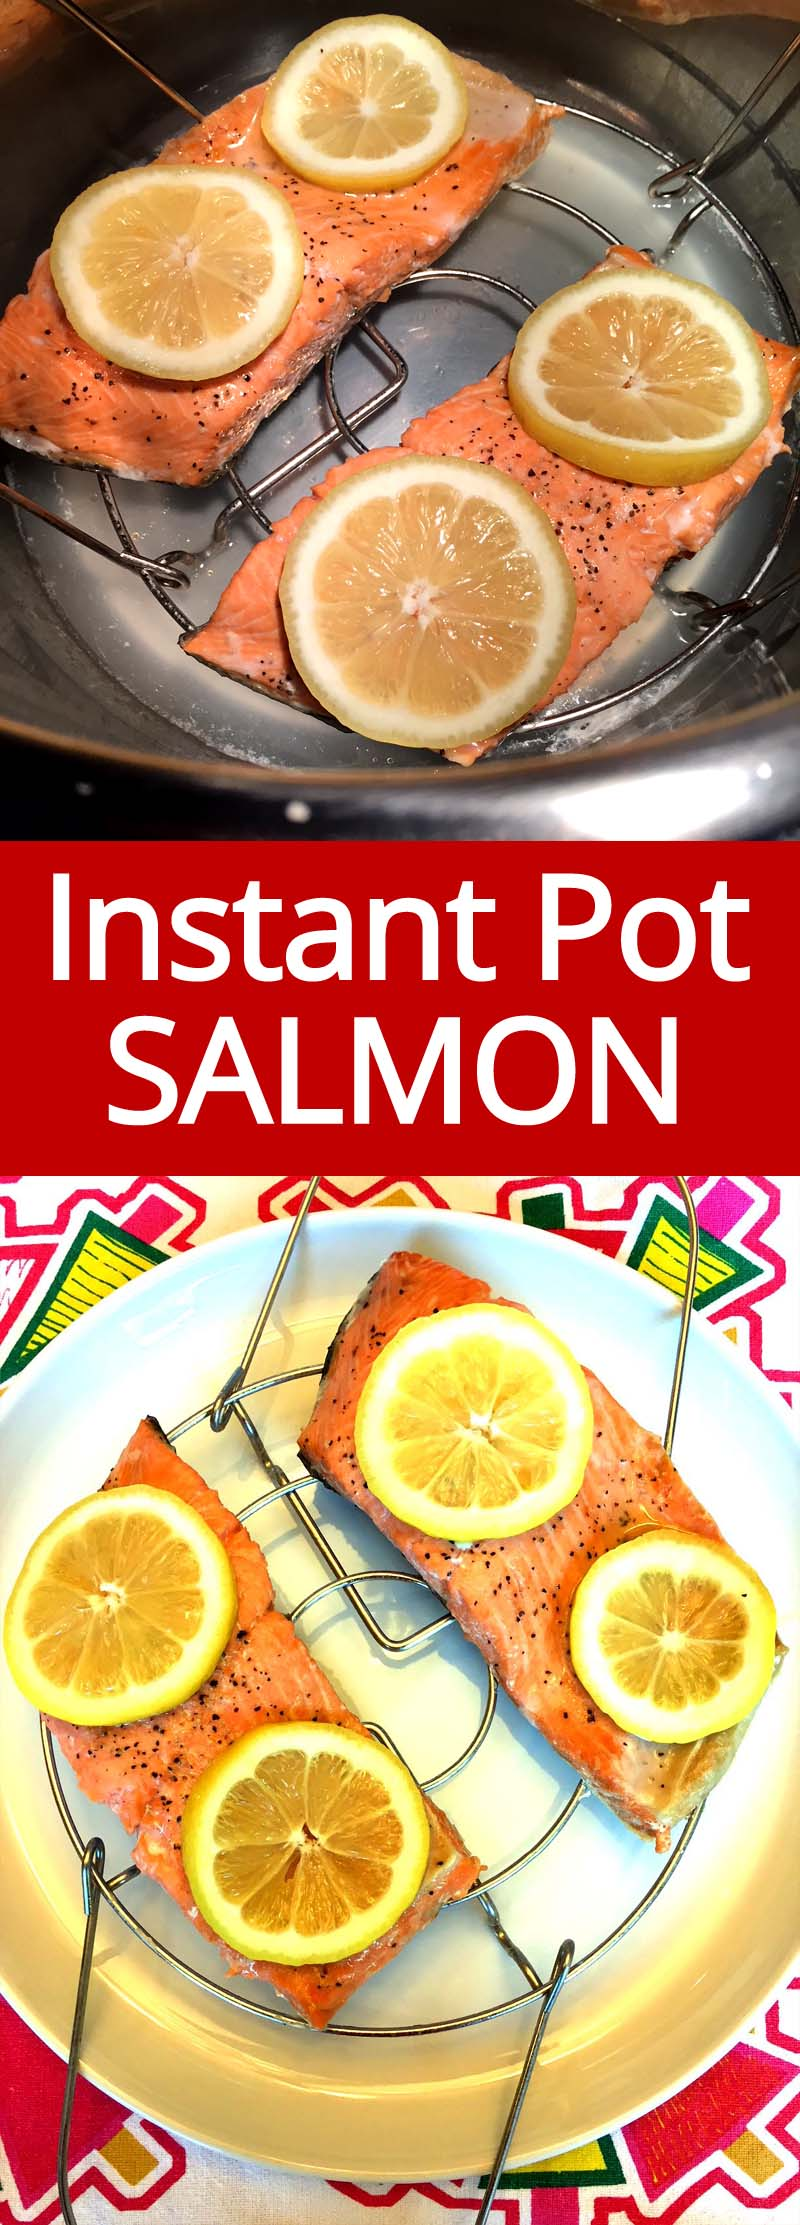 This Instant Pot salmon is amazing and ready in 3 minutes! So tender and juicy, this is the only salmon recipe I'll ever need!